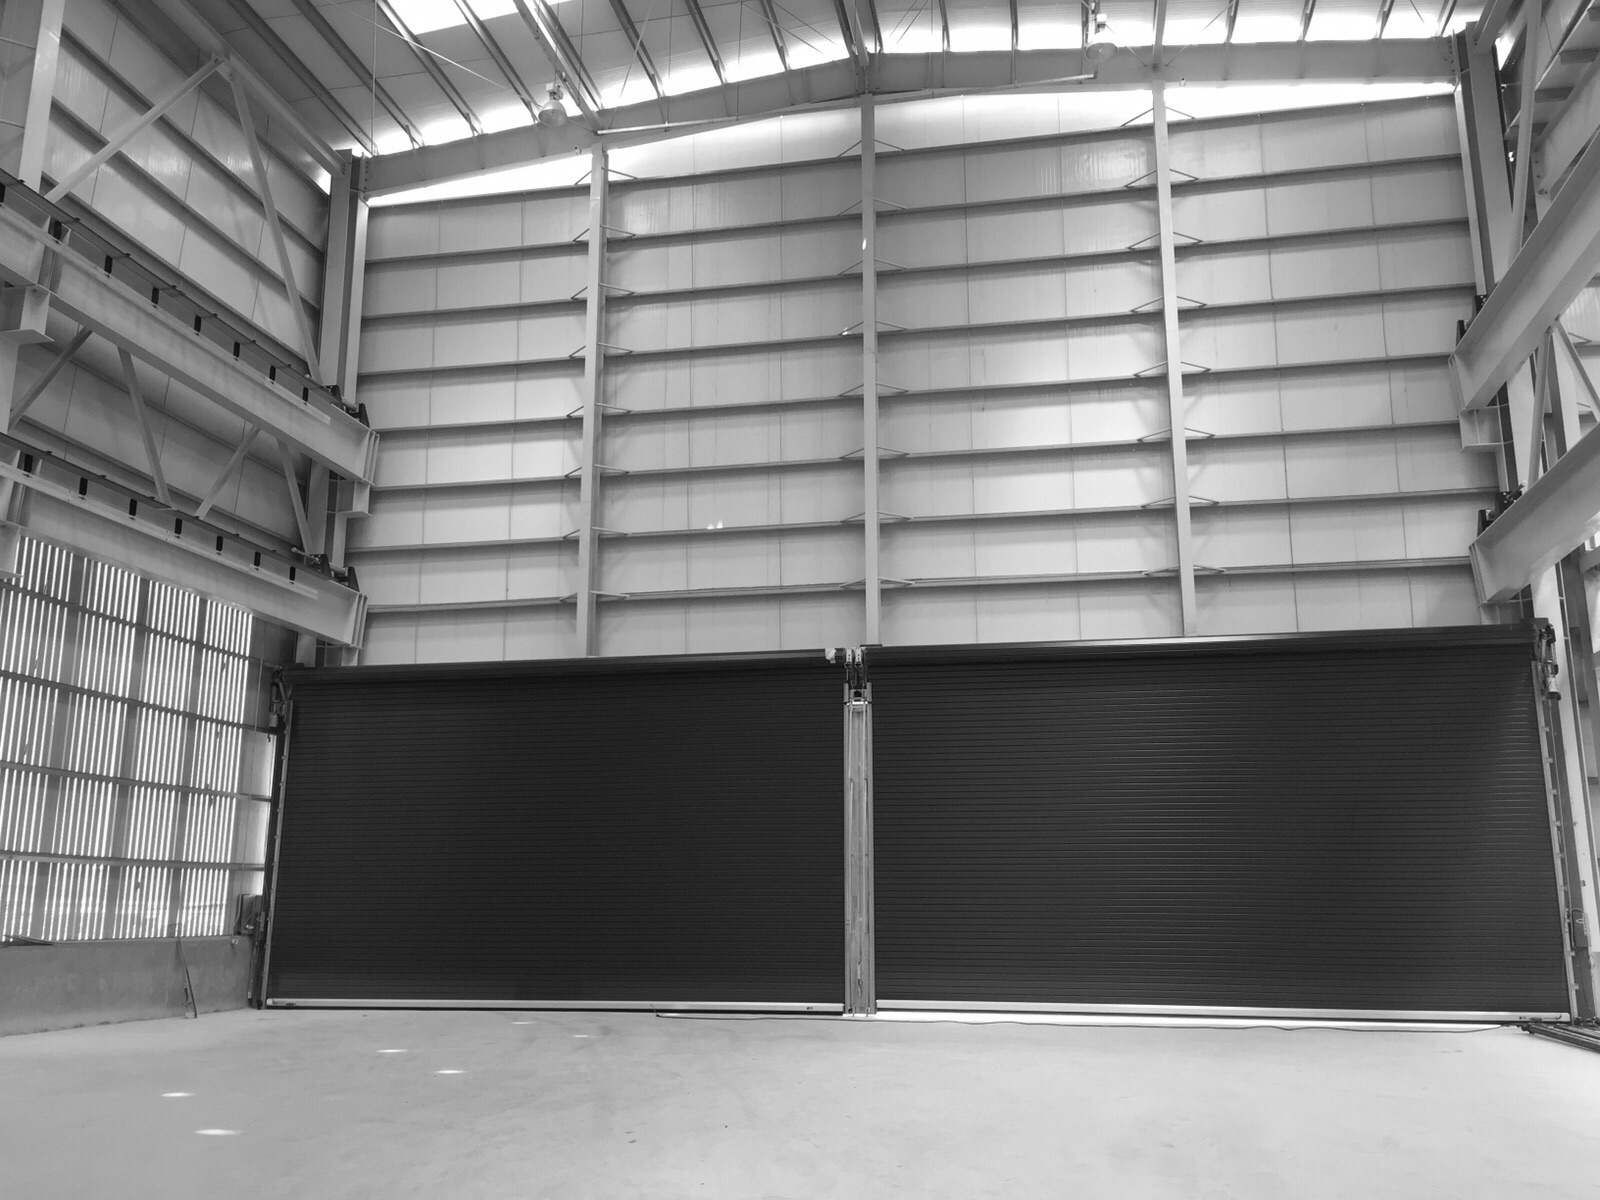 20000mm rolling shutter with SSG